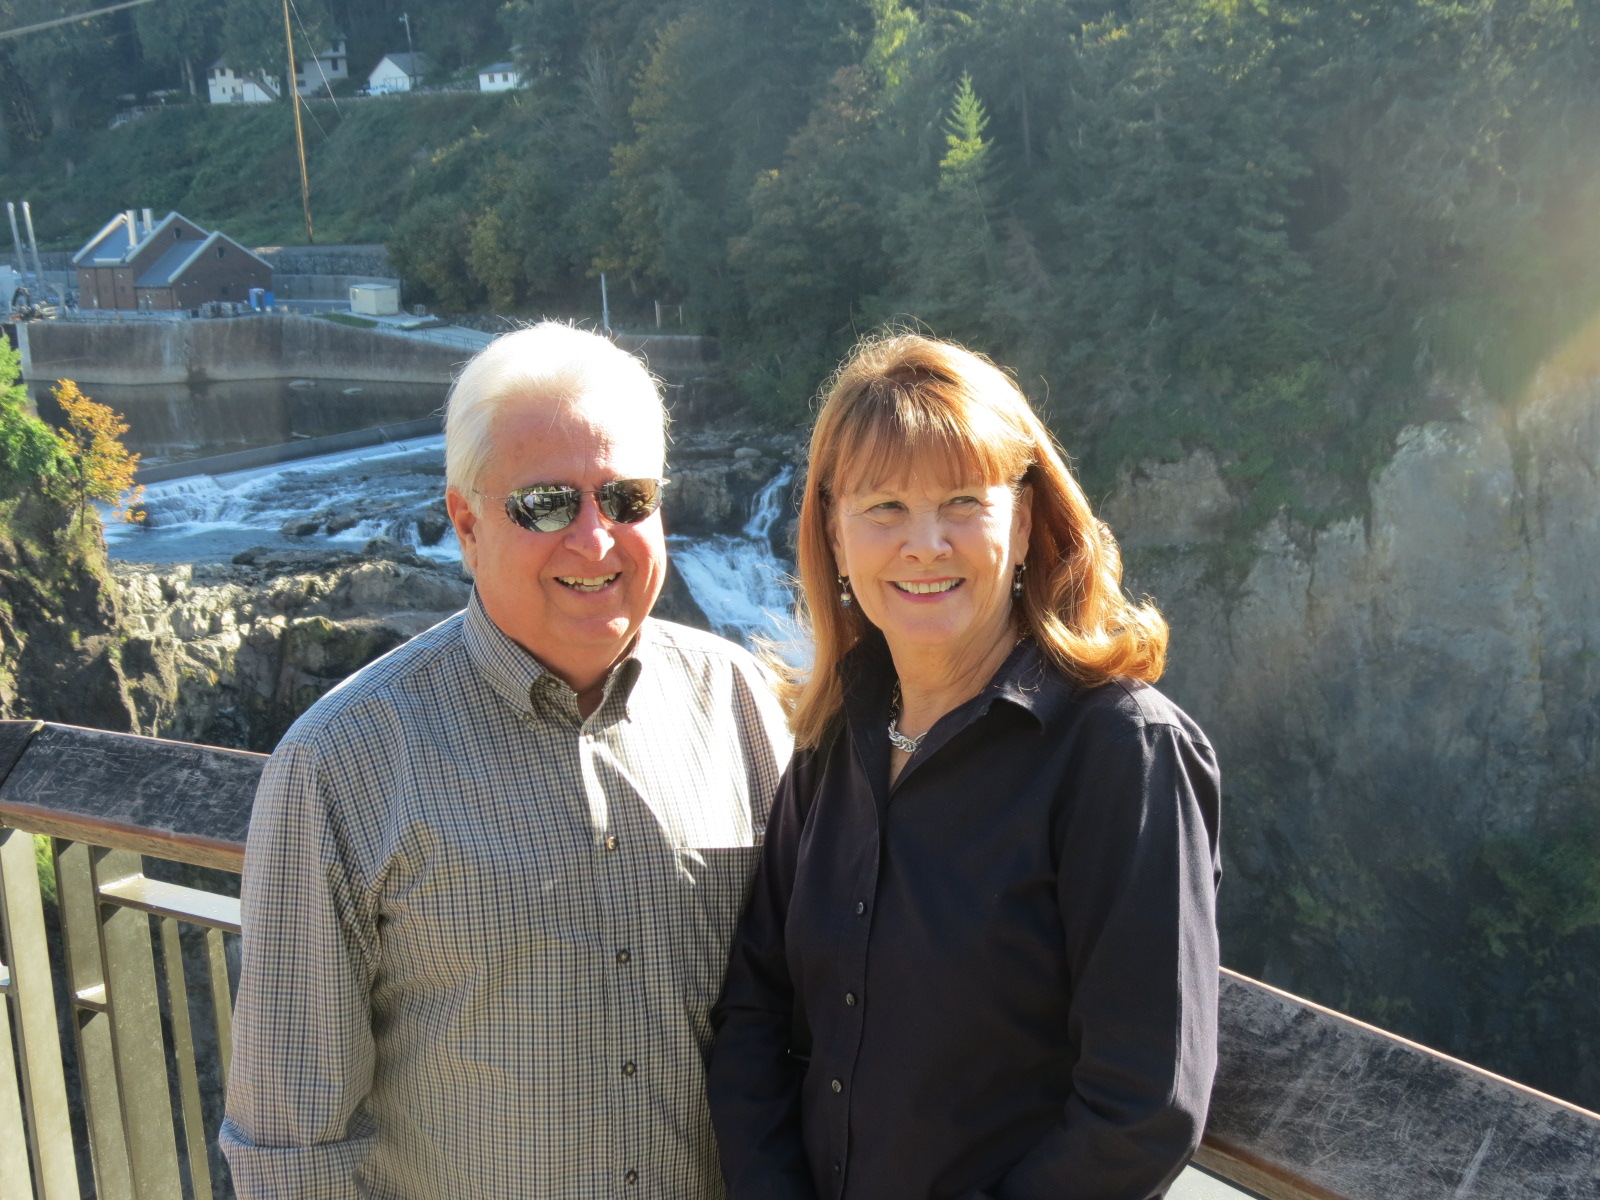 Gary & Debi at Snoqualmie Falls